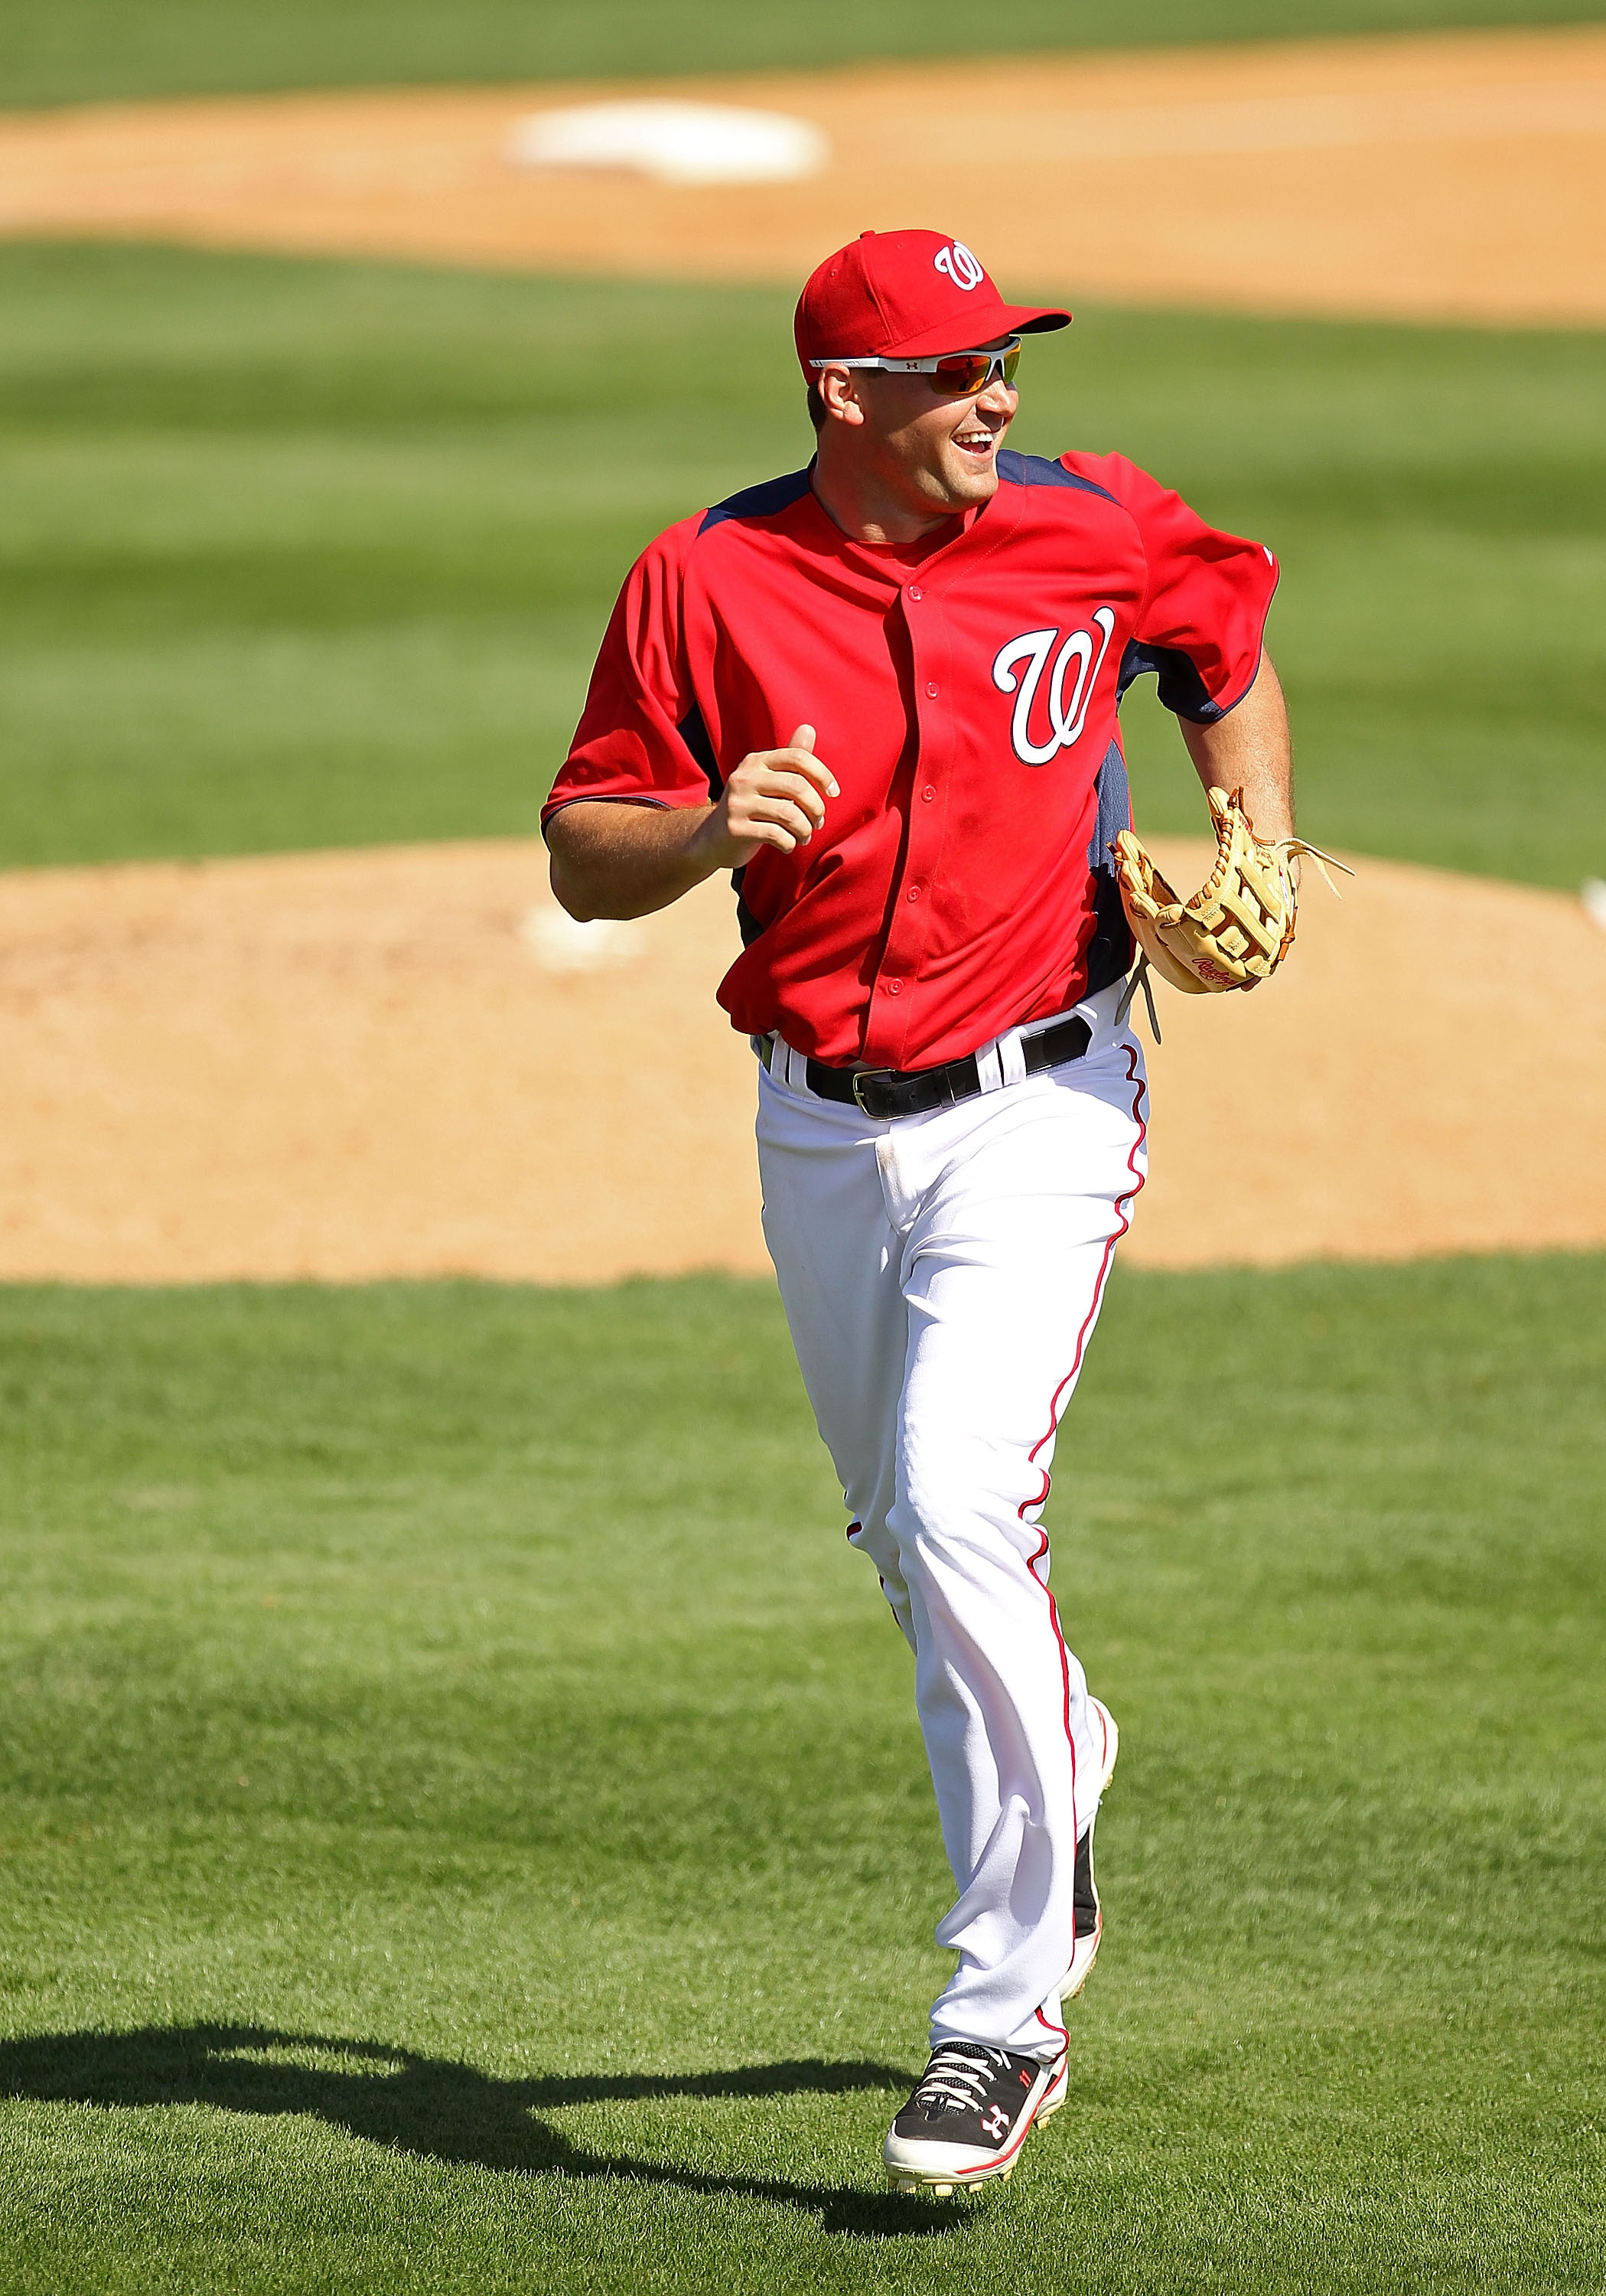 VIERA, FL - MARCH 02:  Ryan Zimmerman #11 of the Washington Nationals jogs back to the dugout during a Spring Training game against the Florida Marlinsat Space Coast Stadium on March 2, 2011 in Viera, Florida.  (Photo by Mike Ehrmann/Getty Images)